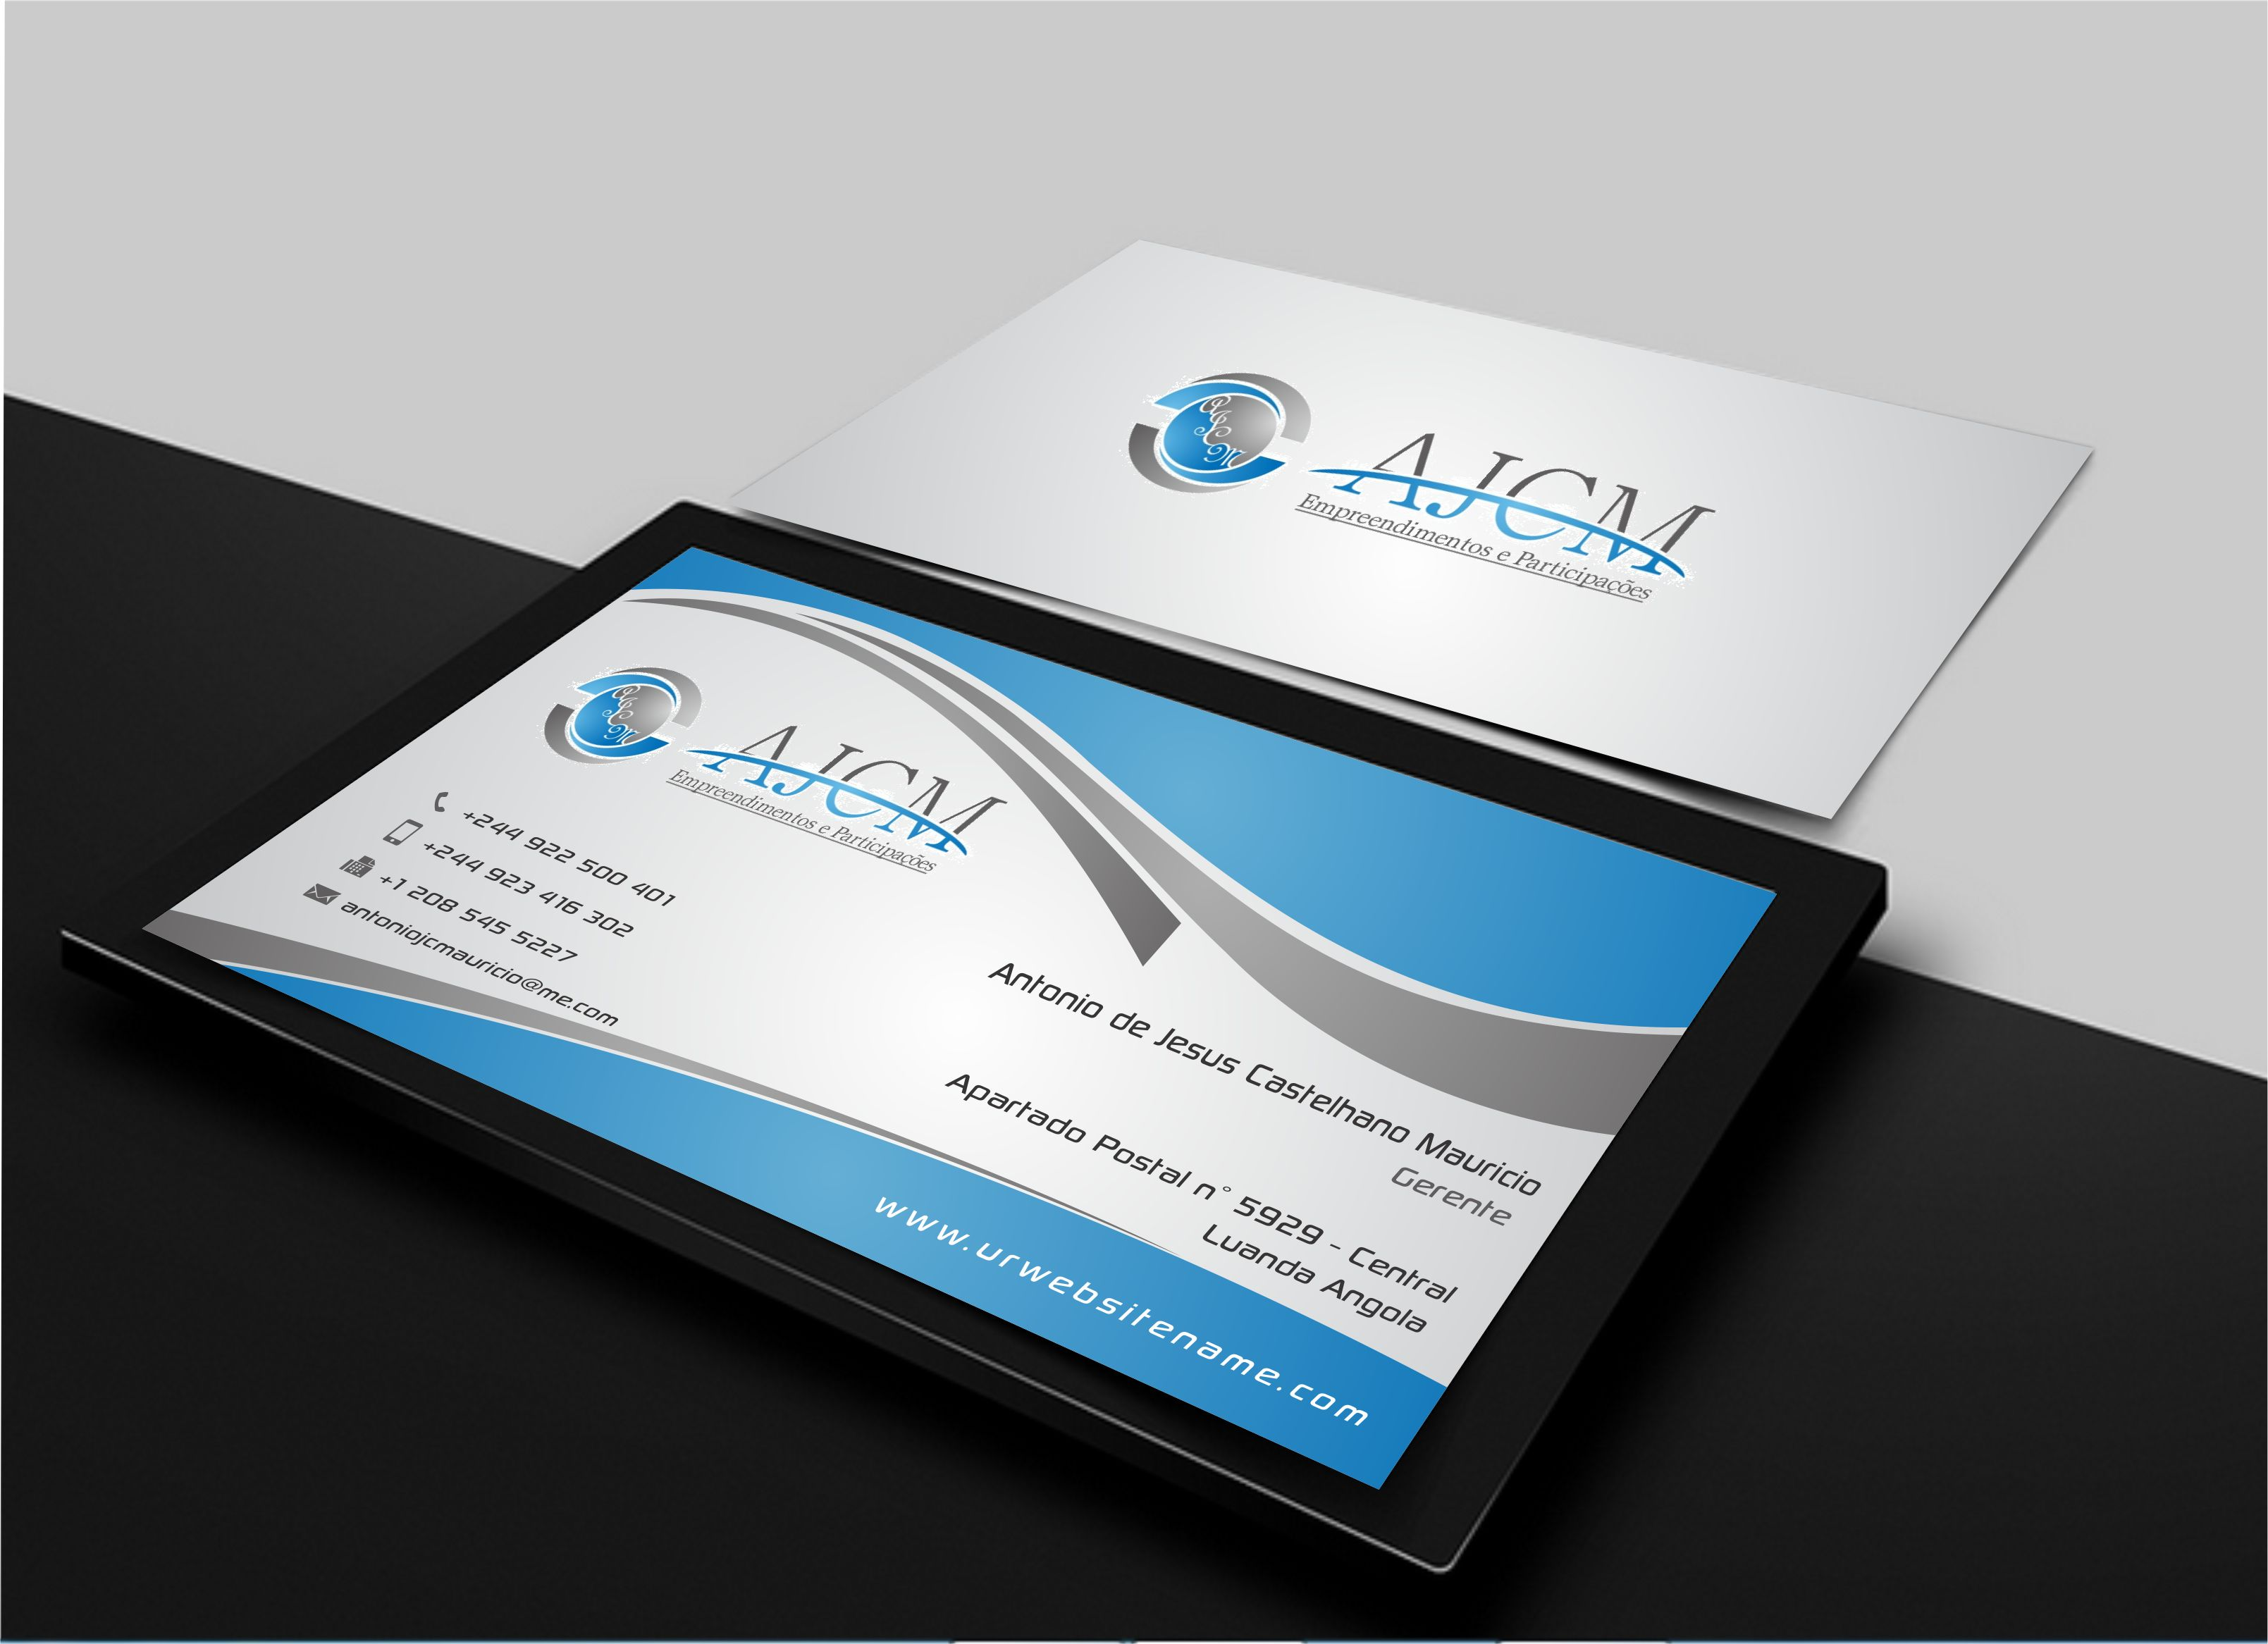 Business cards for AJCM - Empreendimentos e Participações - Business Opportunities